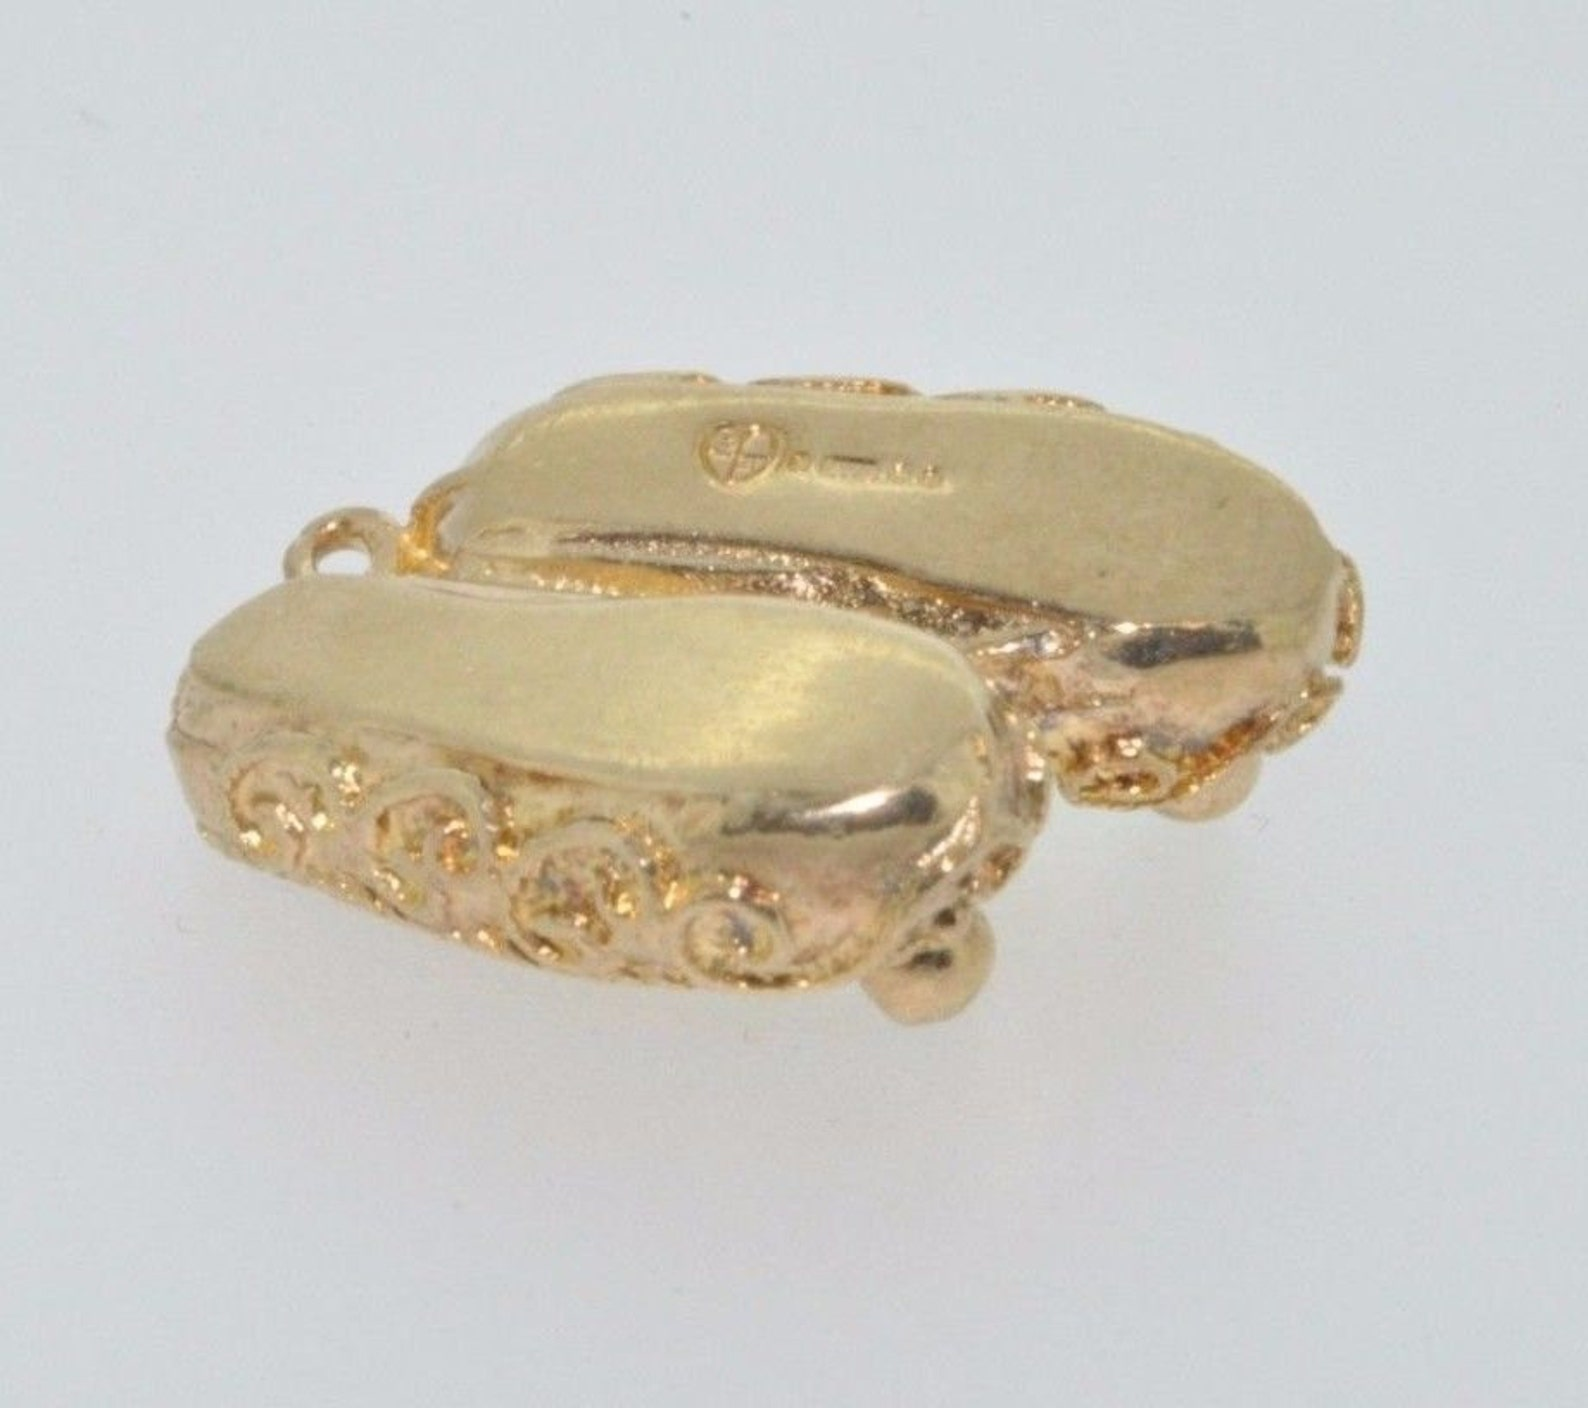 9ct yellow gold fancy slippers/ballet shoes charm london 1971